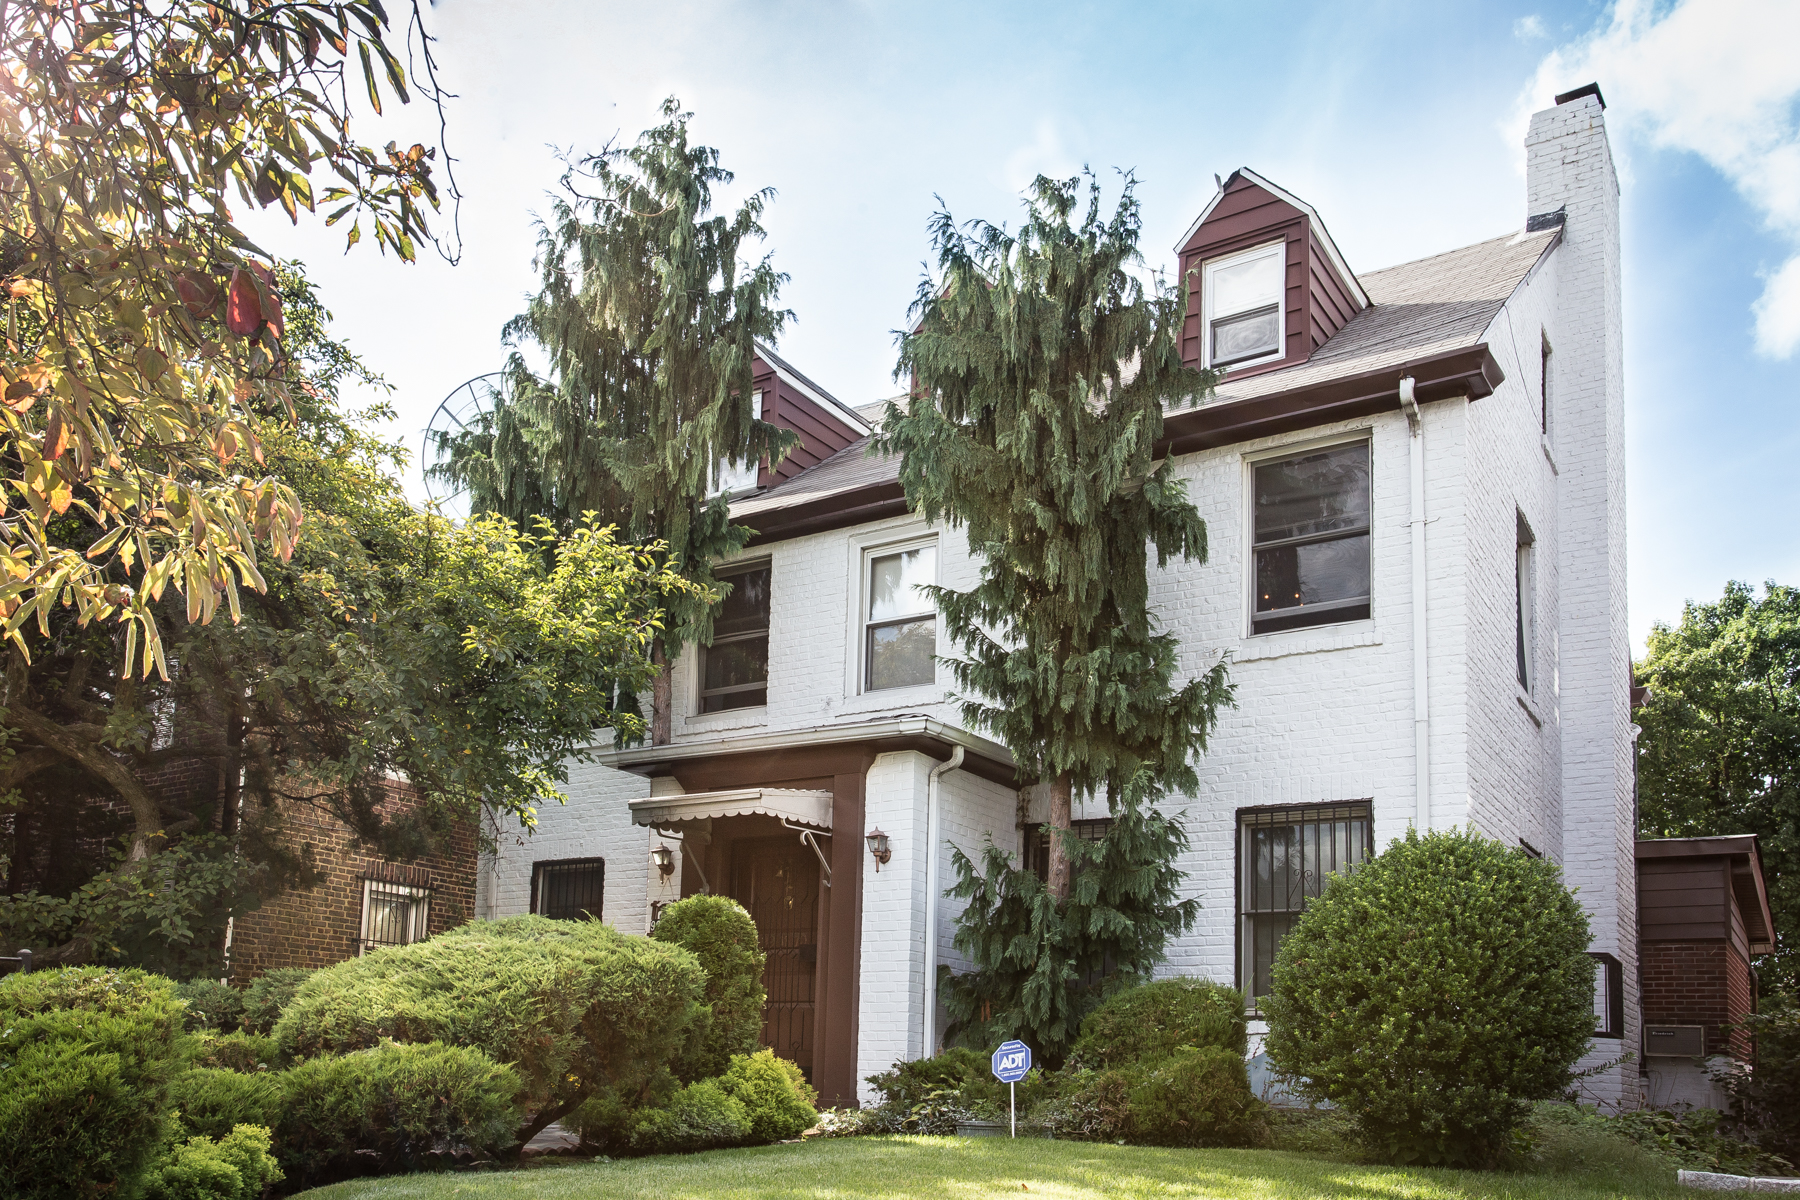 """Single Family Home for Sale at """"CHARMING DETACHED COLONIAL IN GARDENS VICINITY"""" 99-11 70 Avenue, Forest Hills, New York 11375 United States"""